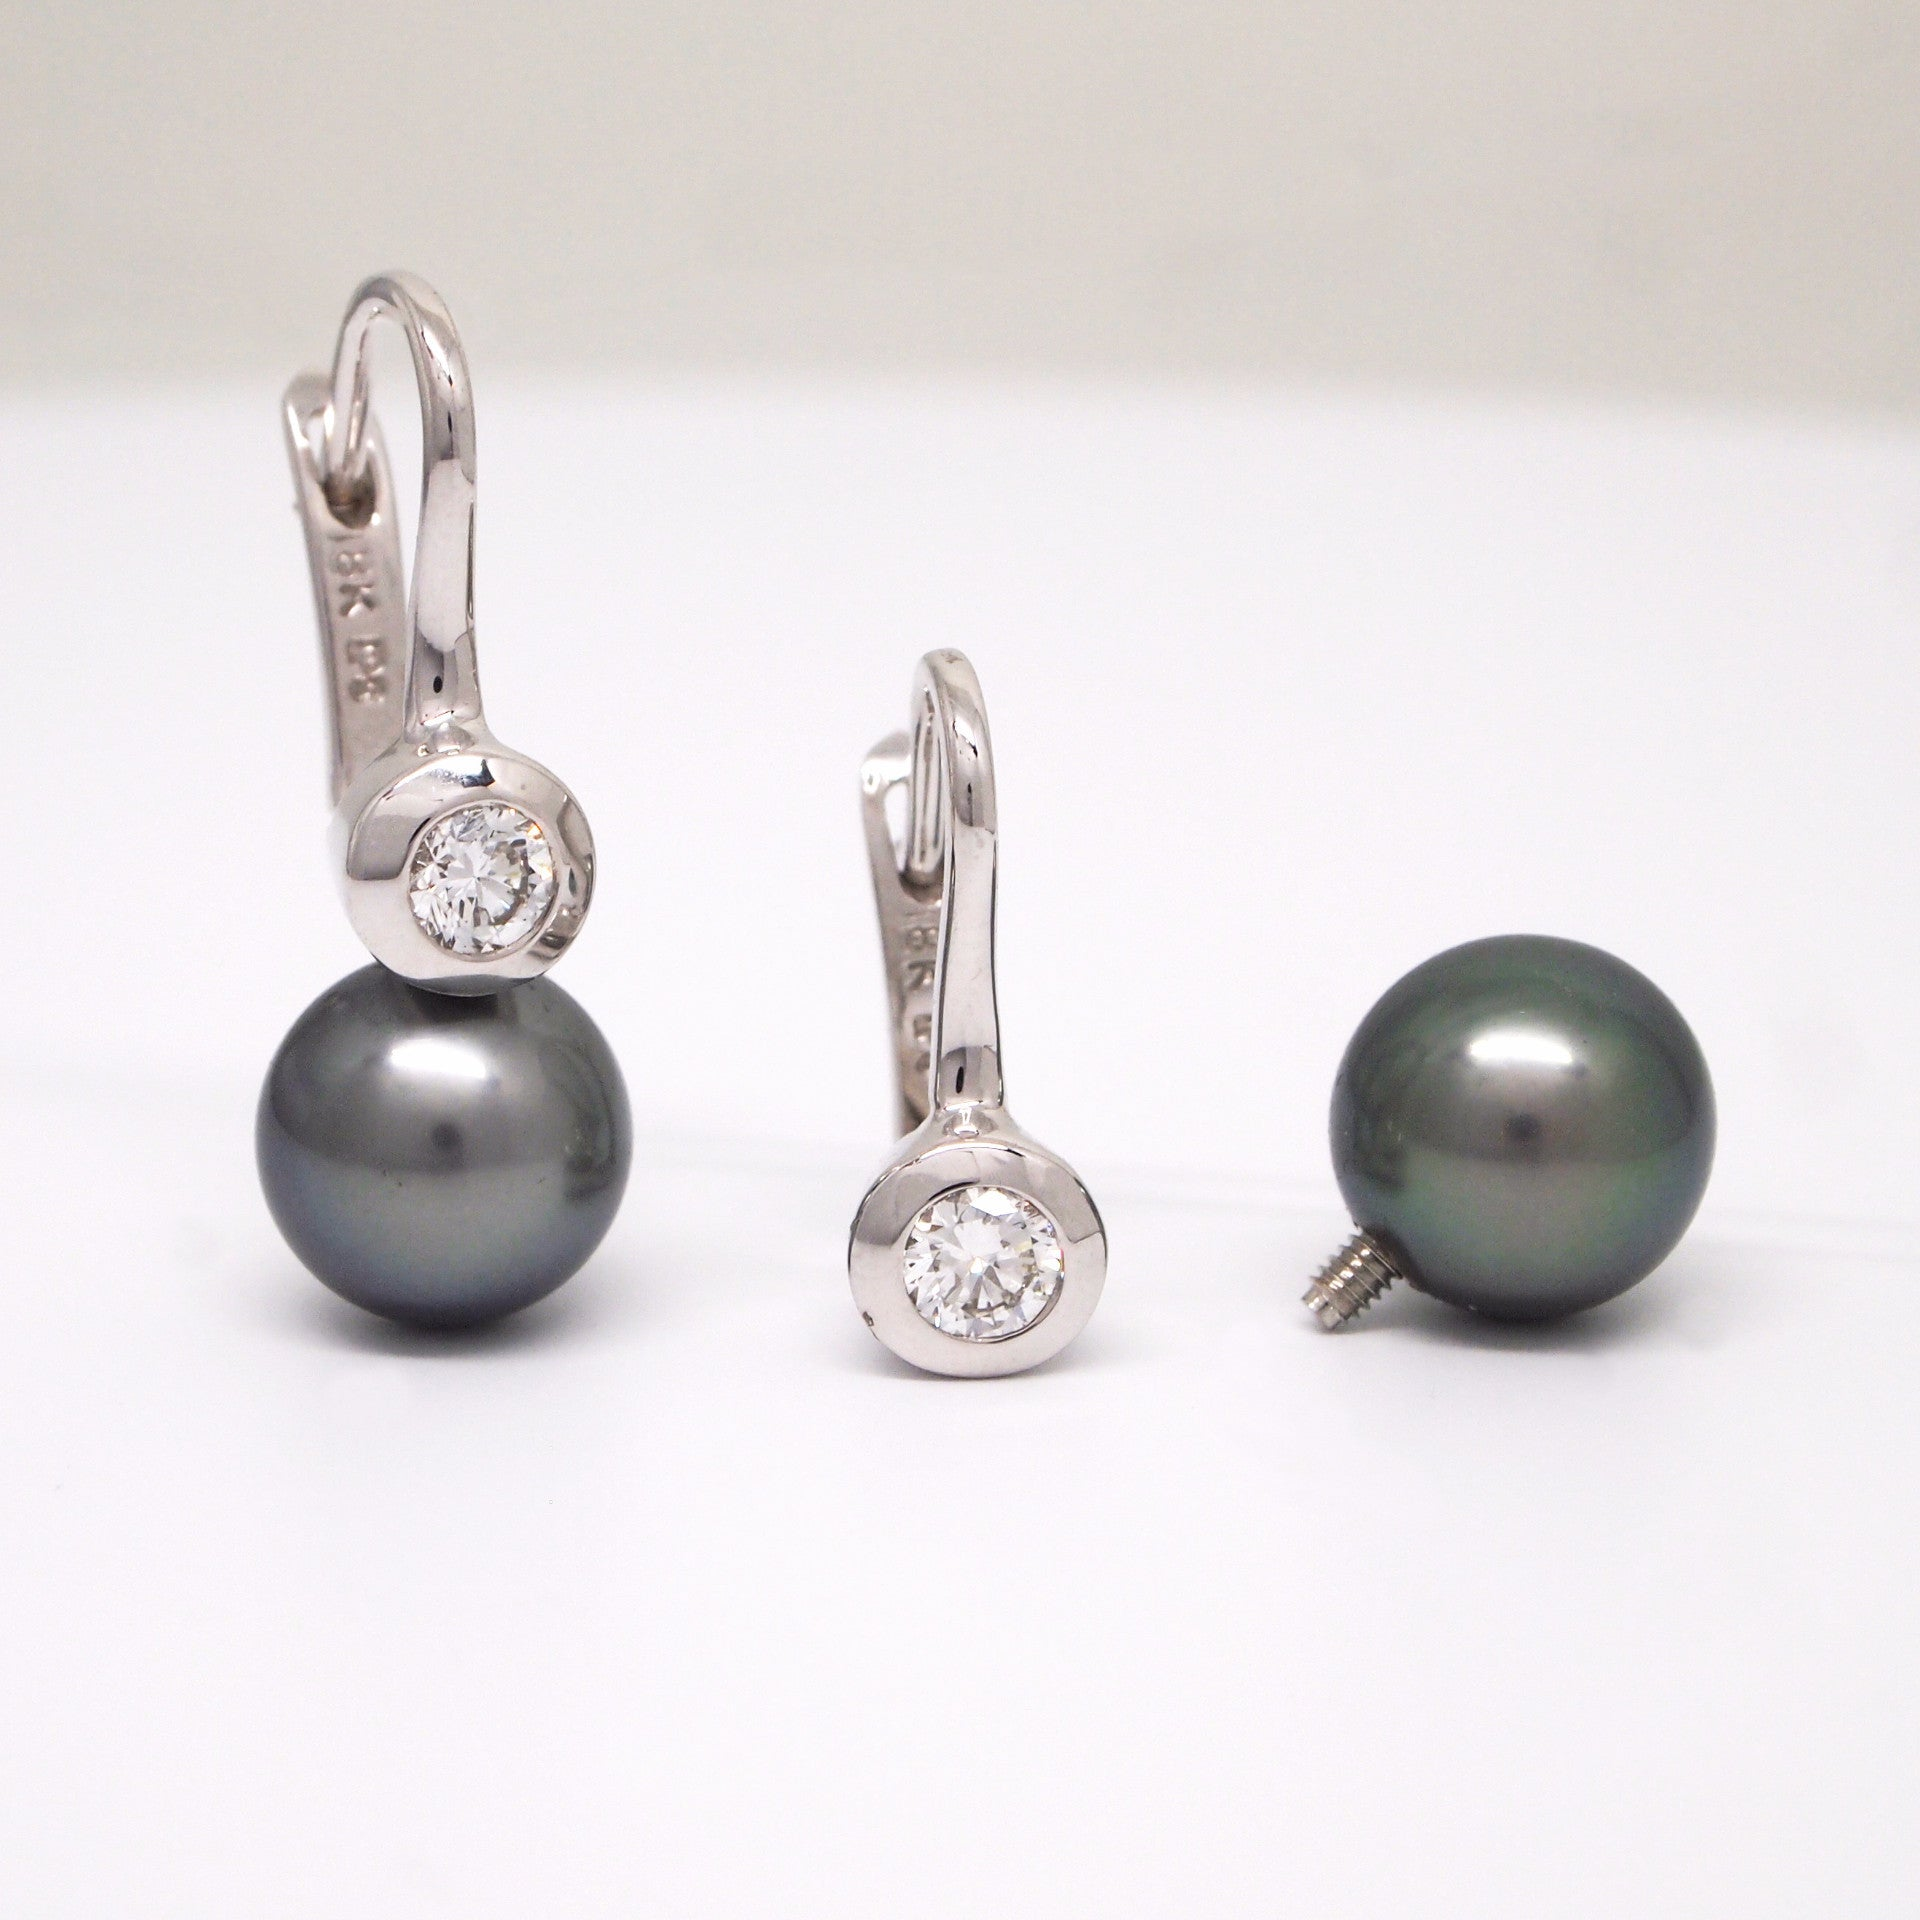 18K white gold diamond and Tahitian pearl earrings with 2 bezel-set diamonds weighing a total of 0.40 carats, and 2 removable (screw off) round 9.5mm black Tahitian pearls.